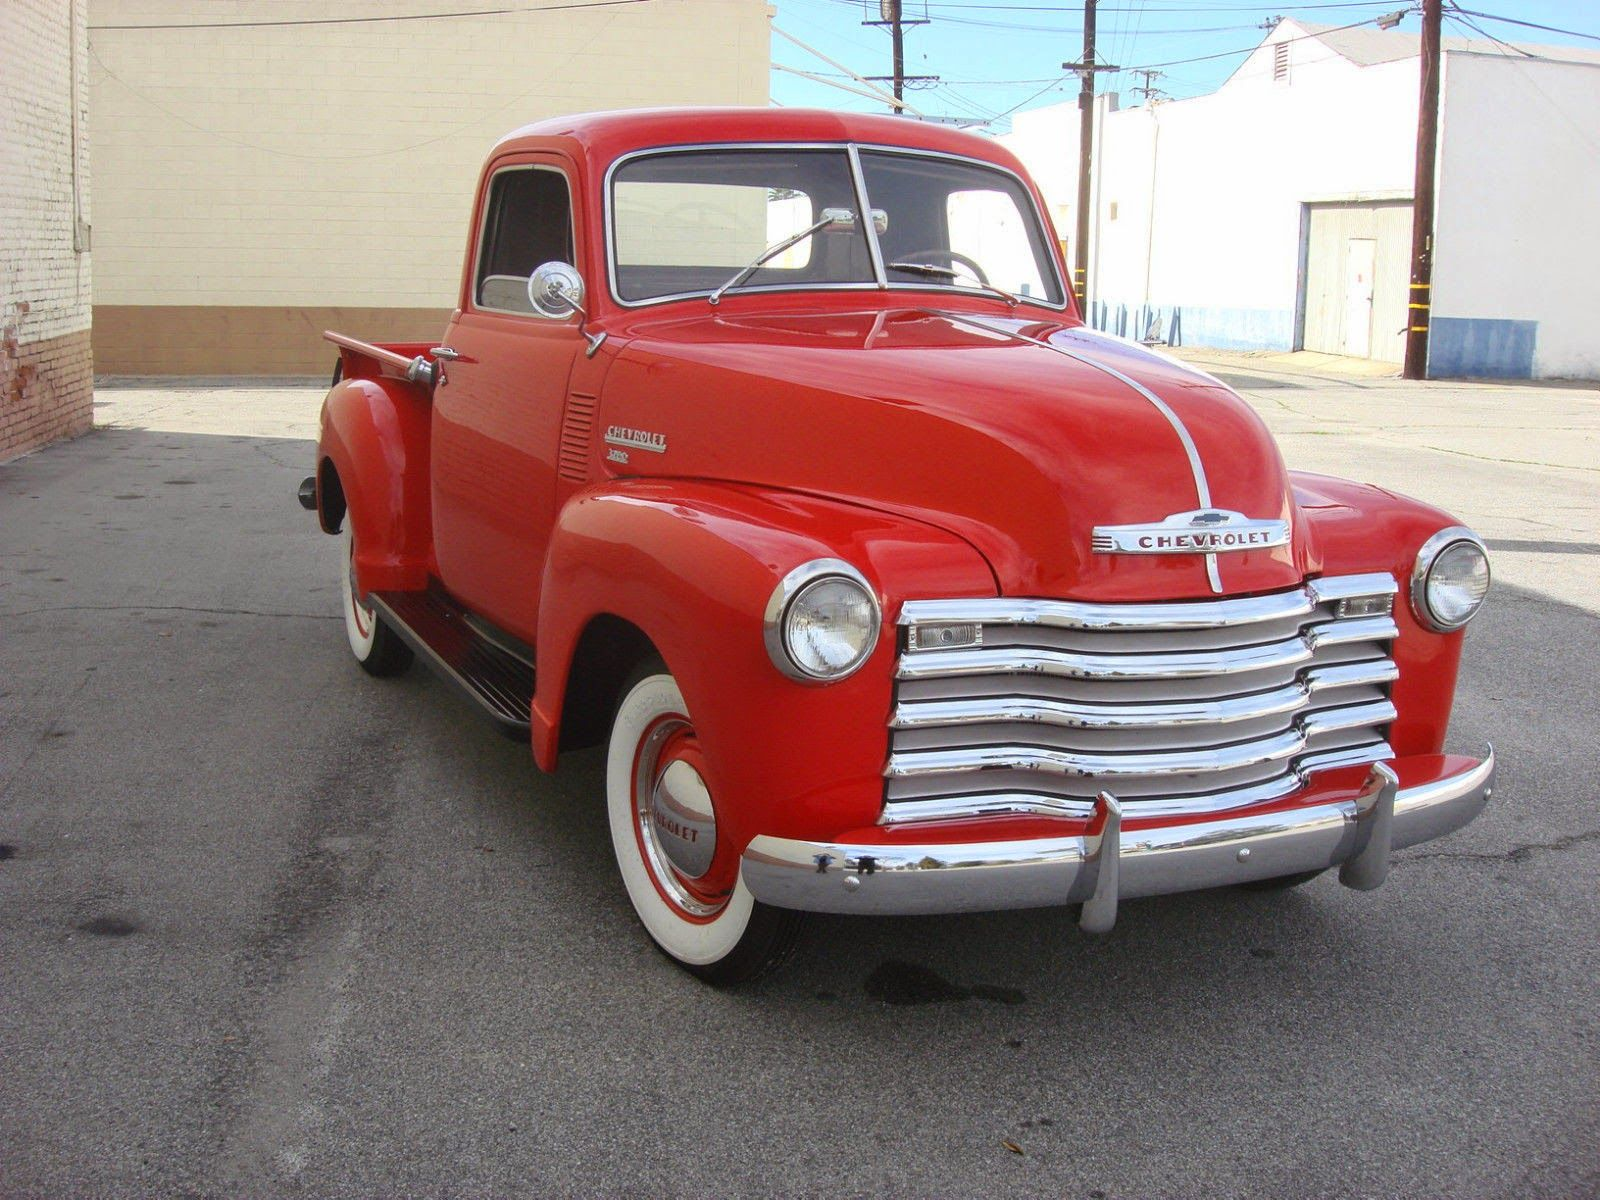 Classic 1950 1960 Chevy Cars | 1950 Chevrolet 3100 Pickup Truck